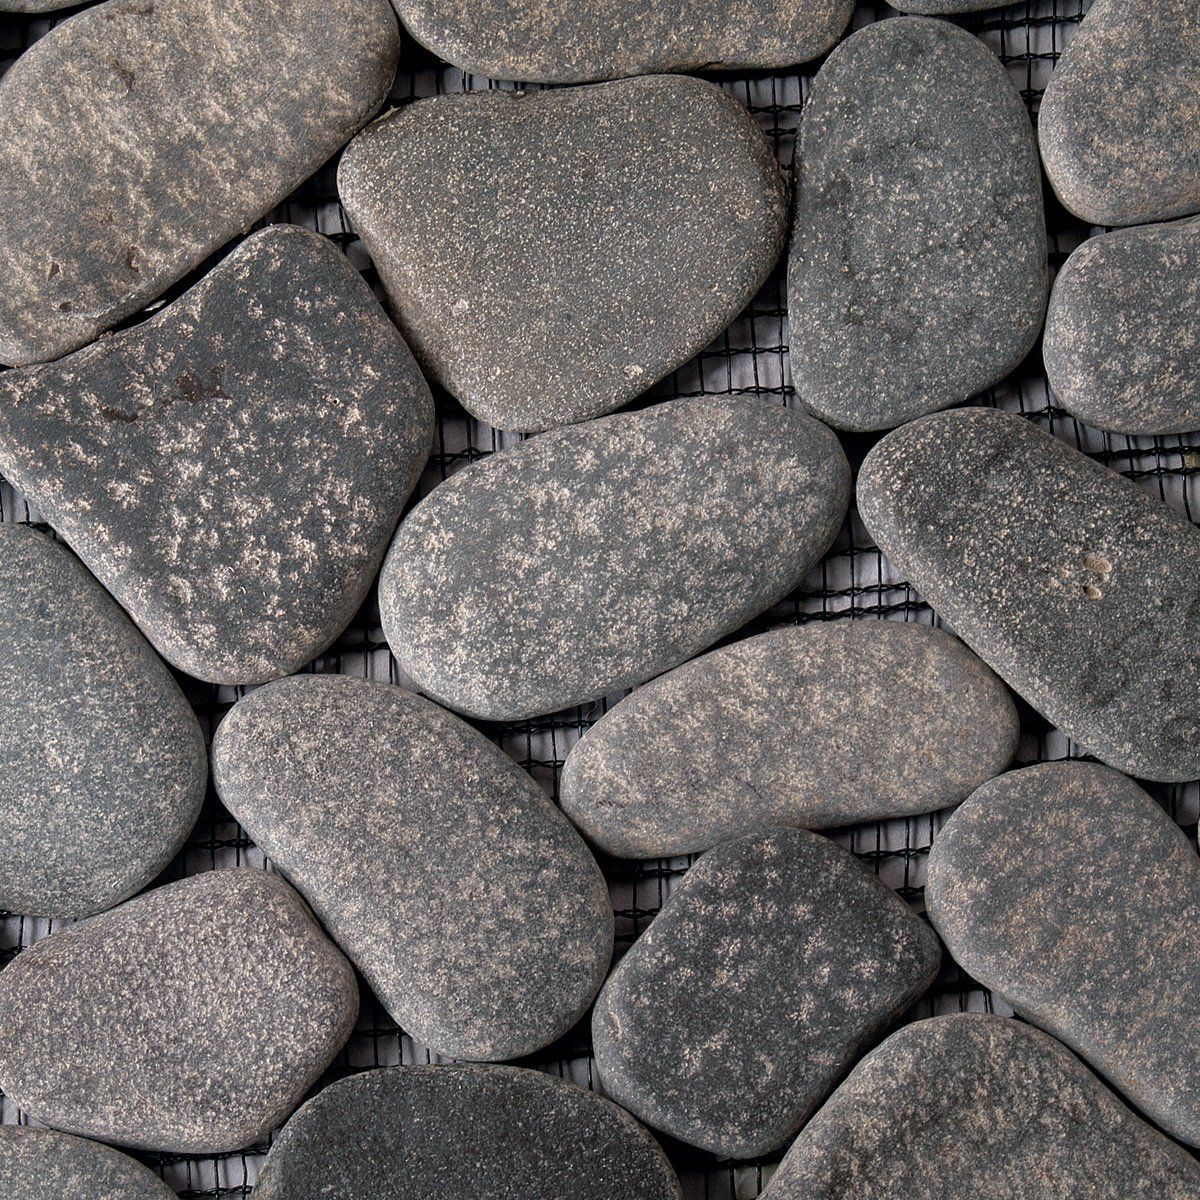 Good Solistone 6009 River Gray River Rock Floor Tile   Floors And Surfaces